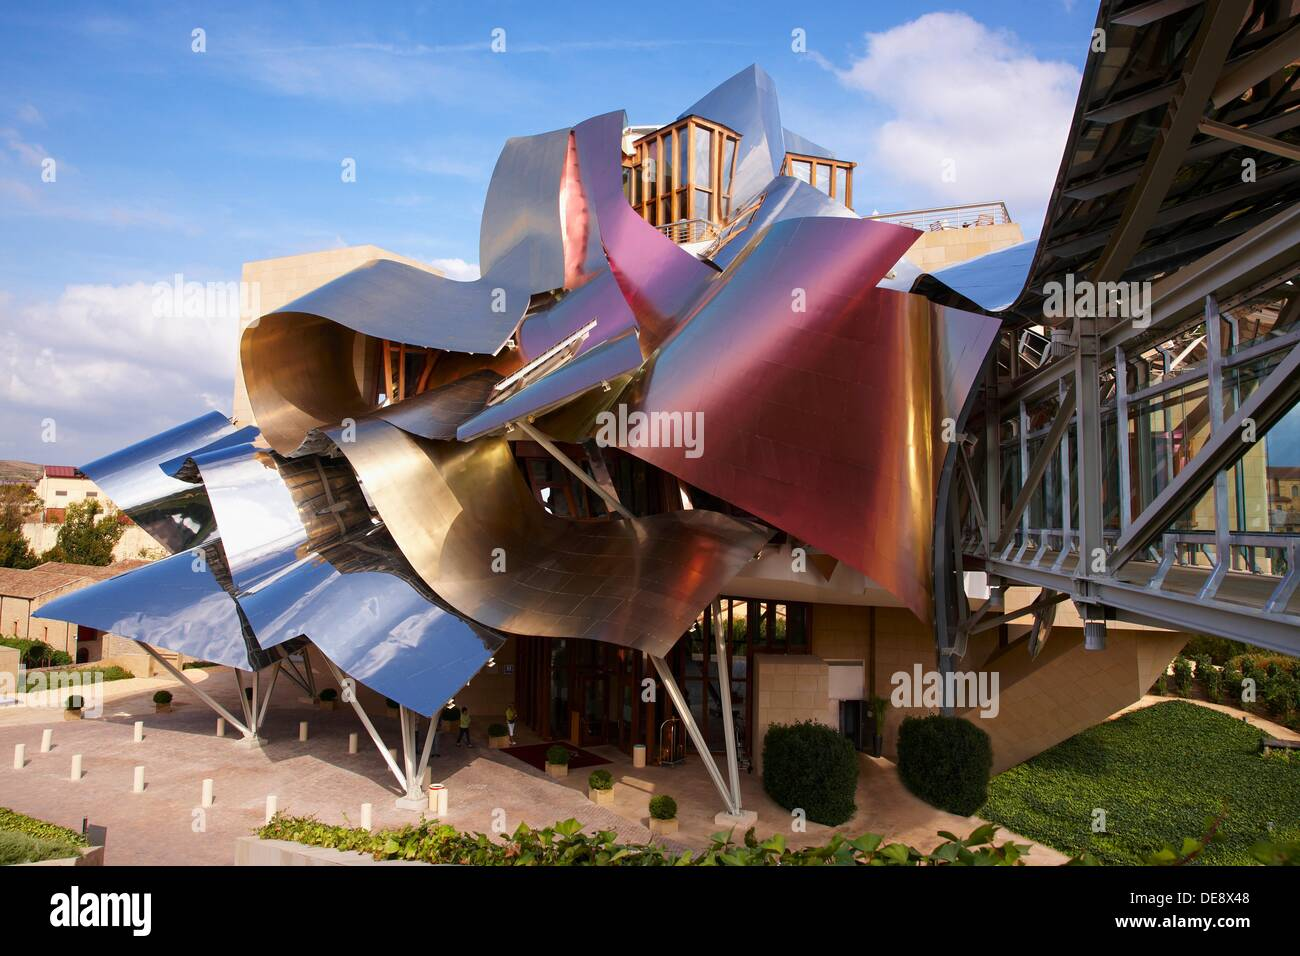 Hotel designed by frank gehry bodegas marques de riscal - Arquitecto bodegas marques de riscal ...